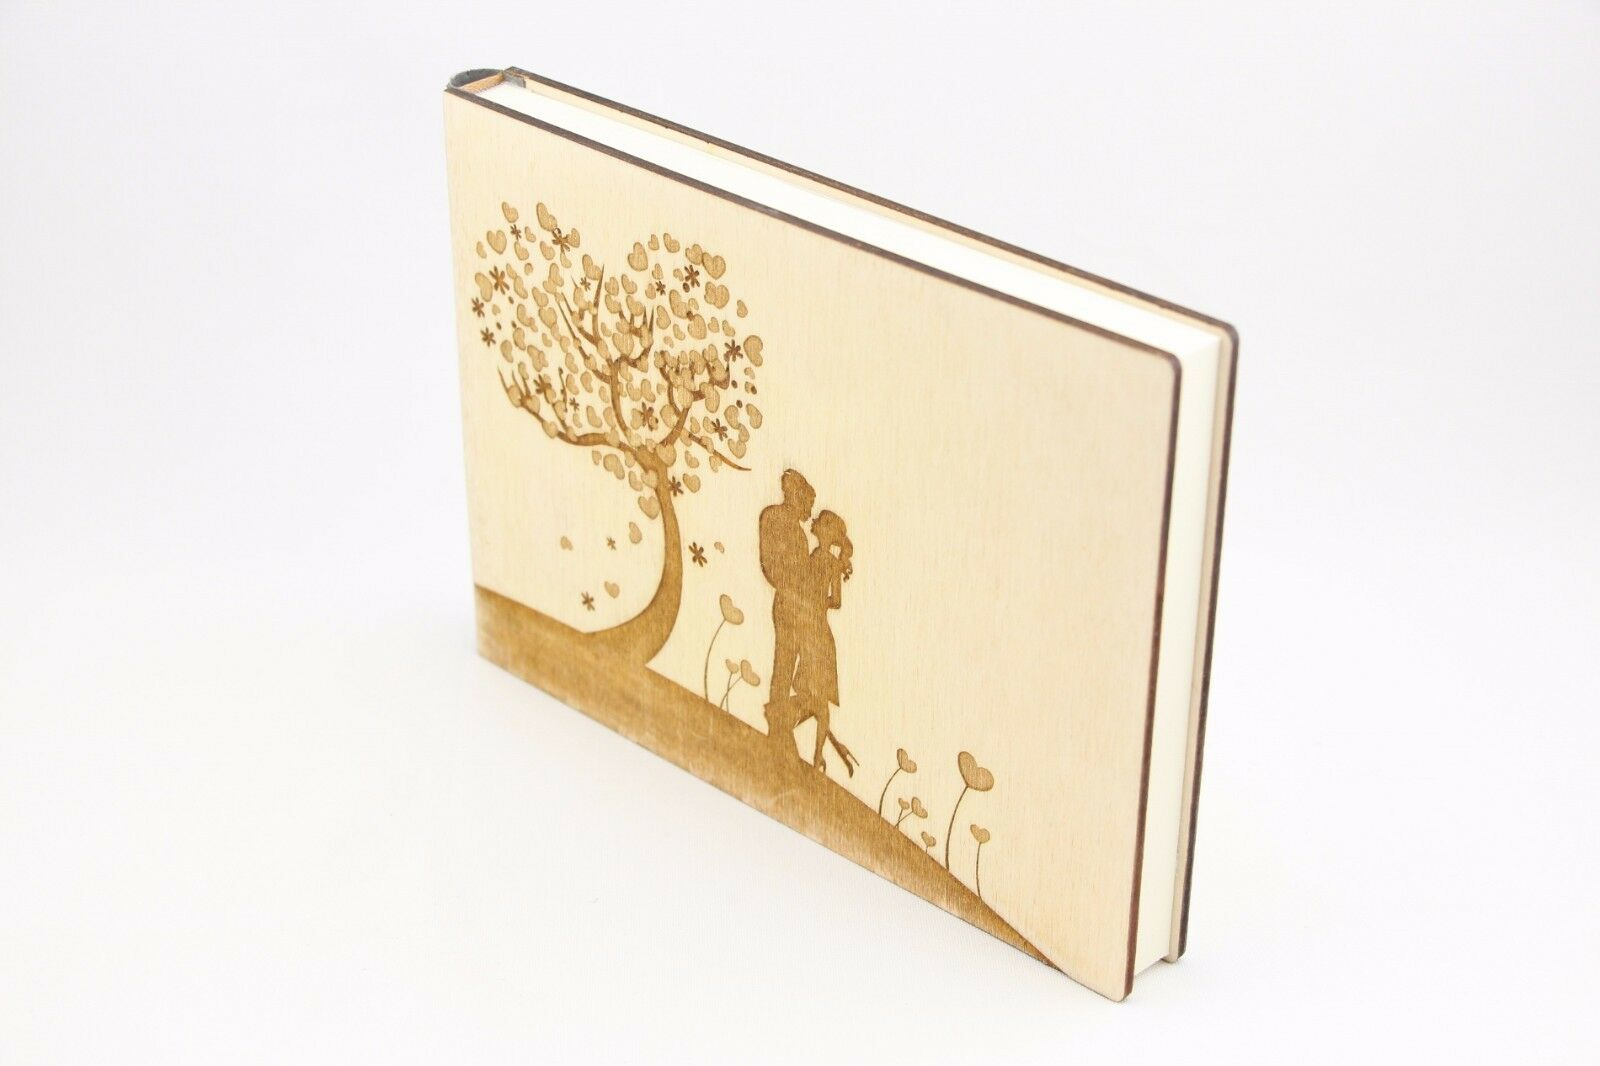 Hochzeitsbaum, bois album photo, Mariage, Coeur album photo, arbre de l'amour